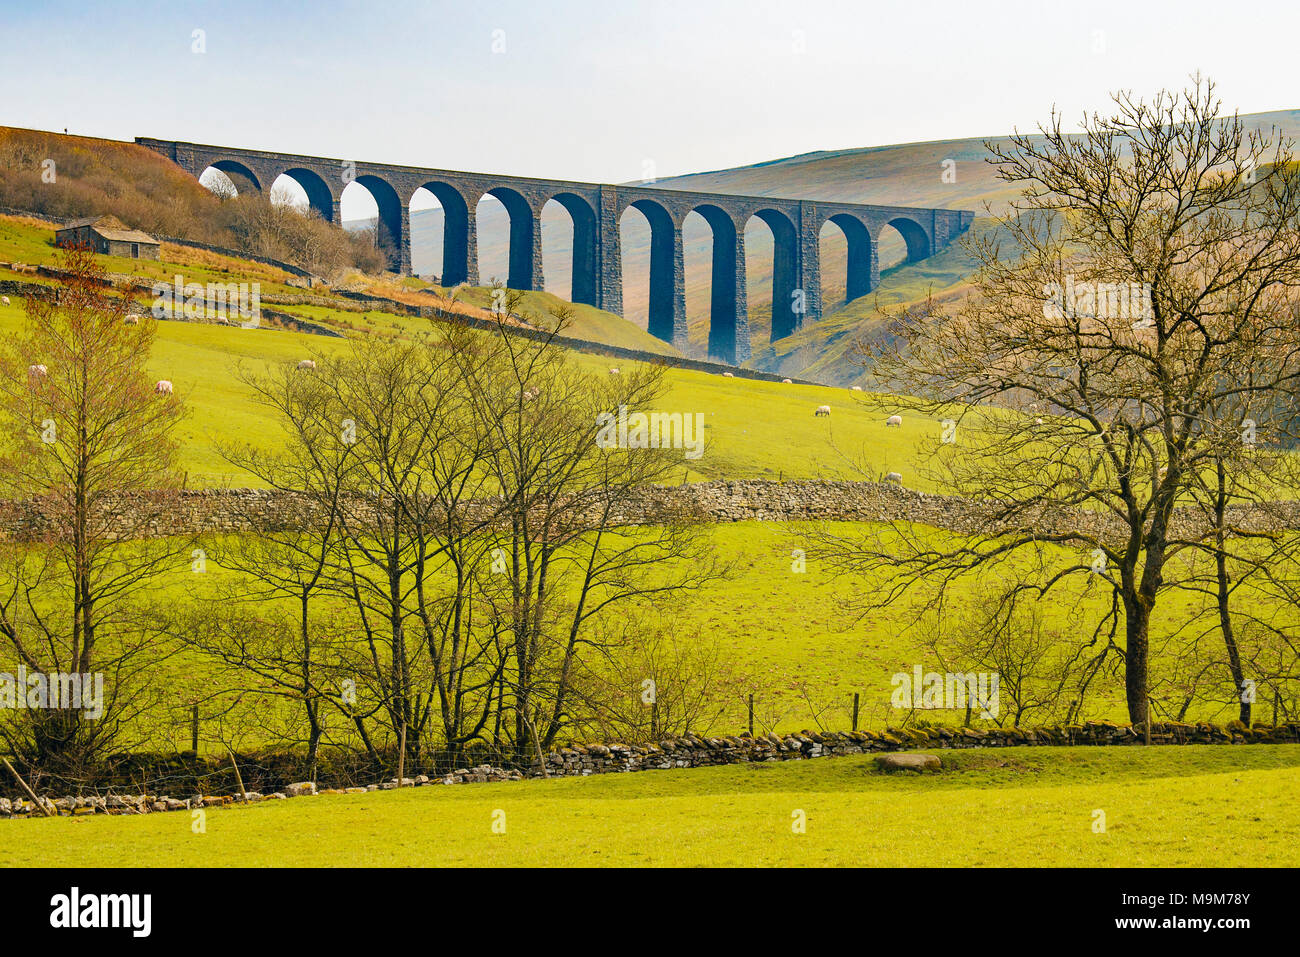 The Arten Gill Viaduct on the Settle-Carlisle railway line above Dentdale in the Yorkshire Dales National Park, England - Stock Image